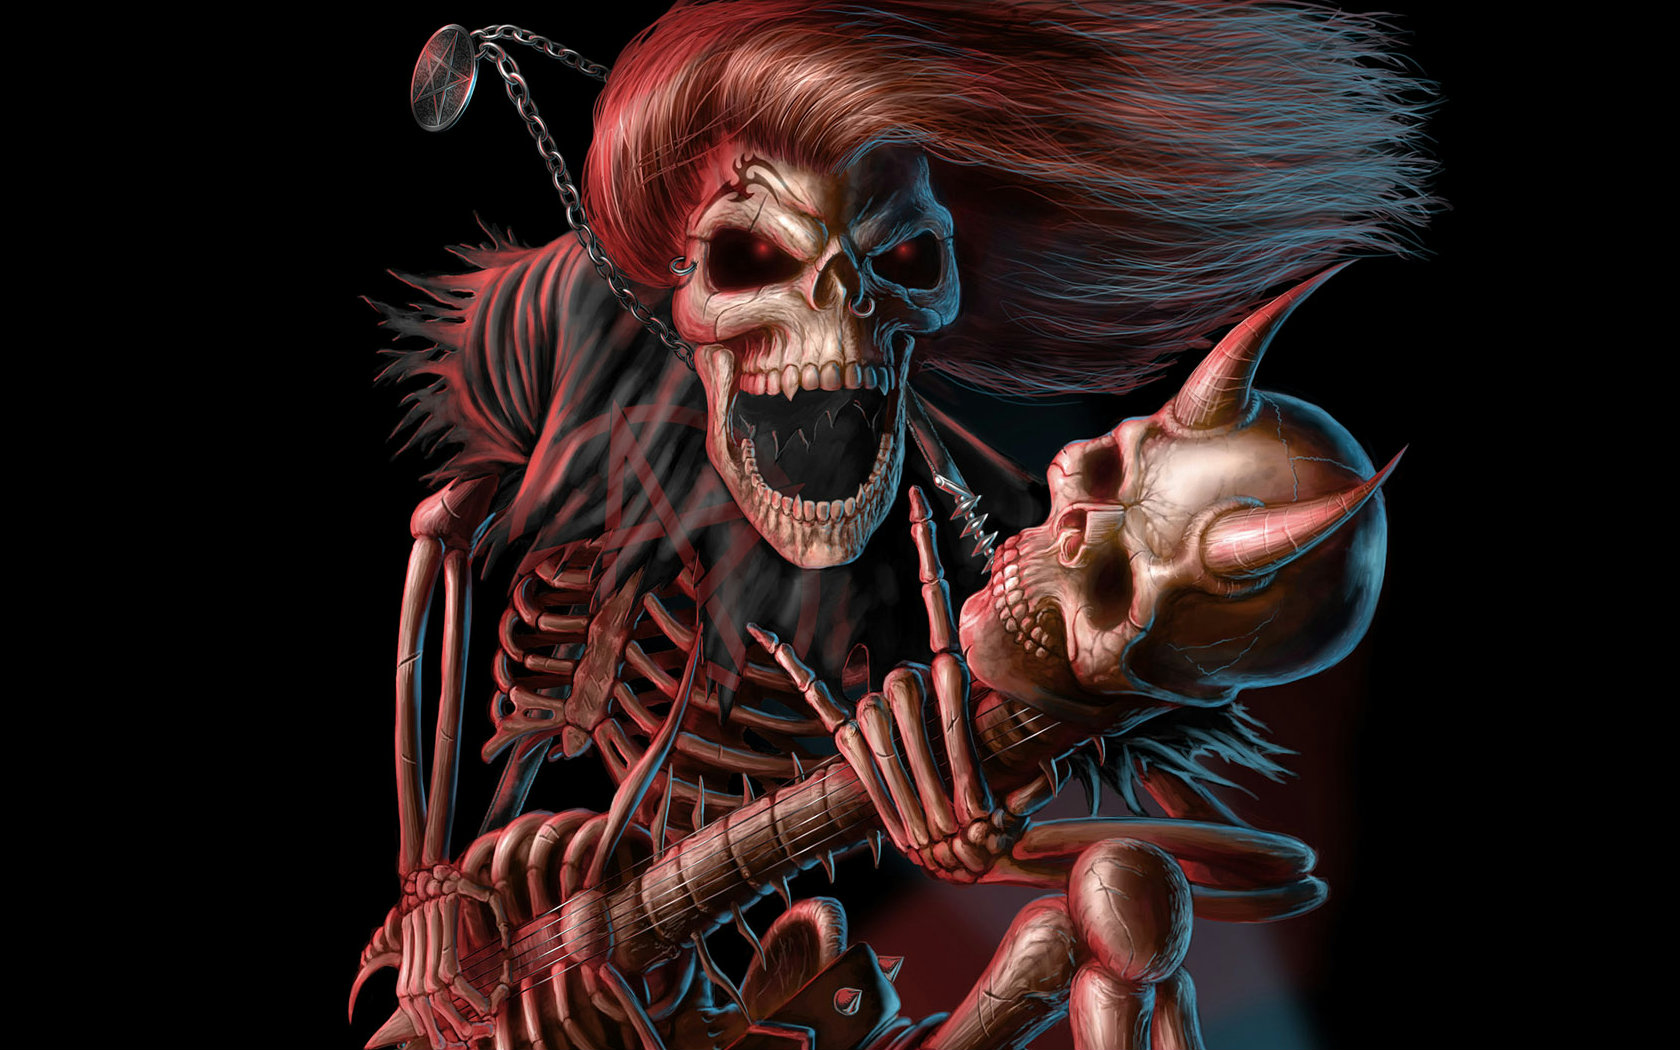 wallpaper skeleton playing a guitar from the human skeleton gothic